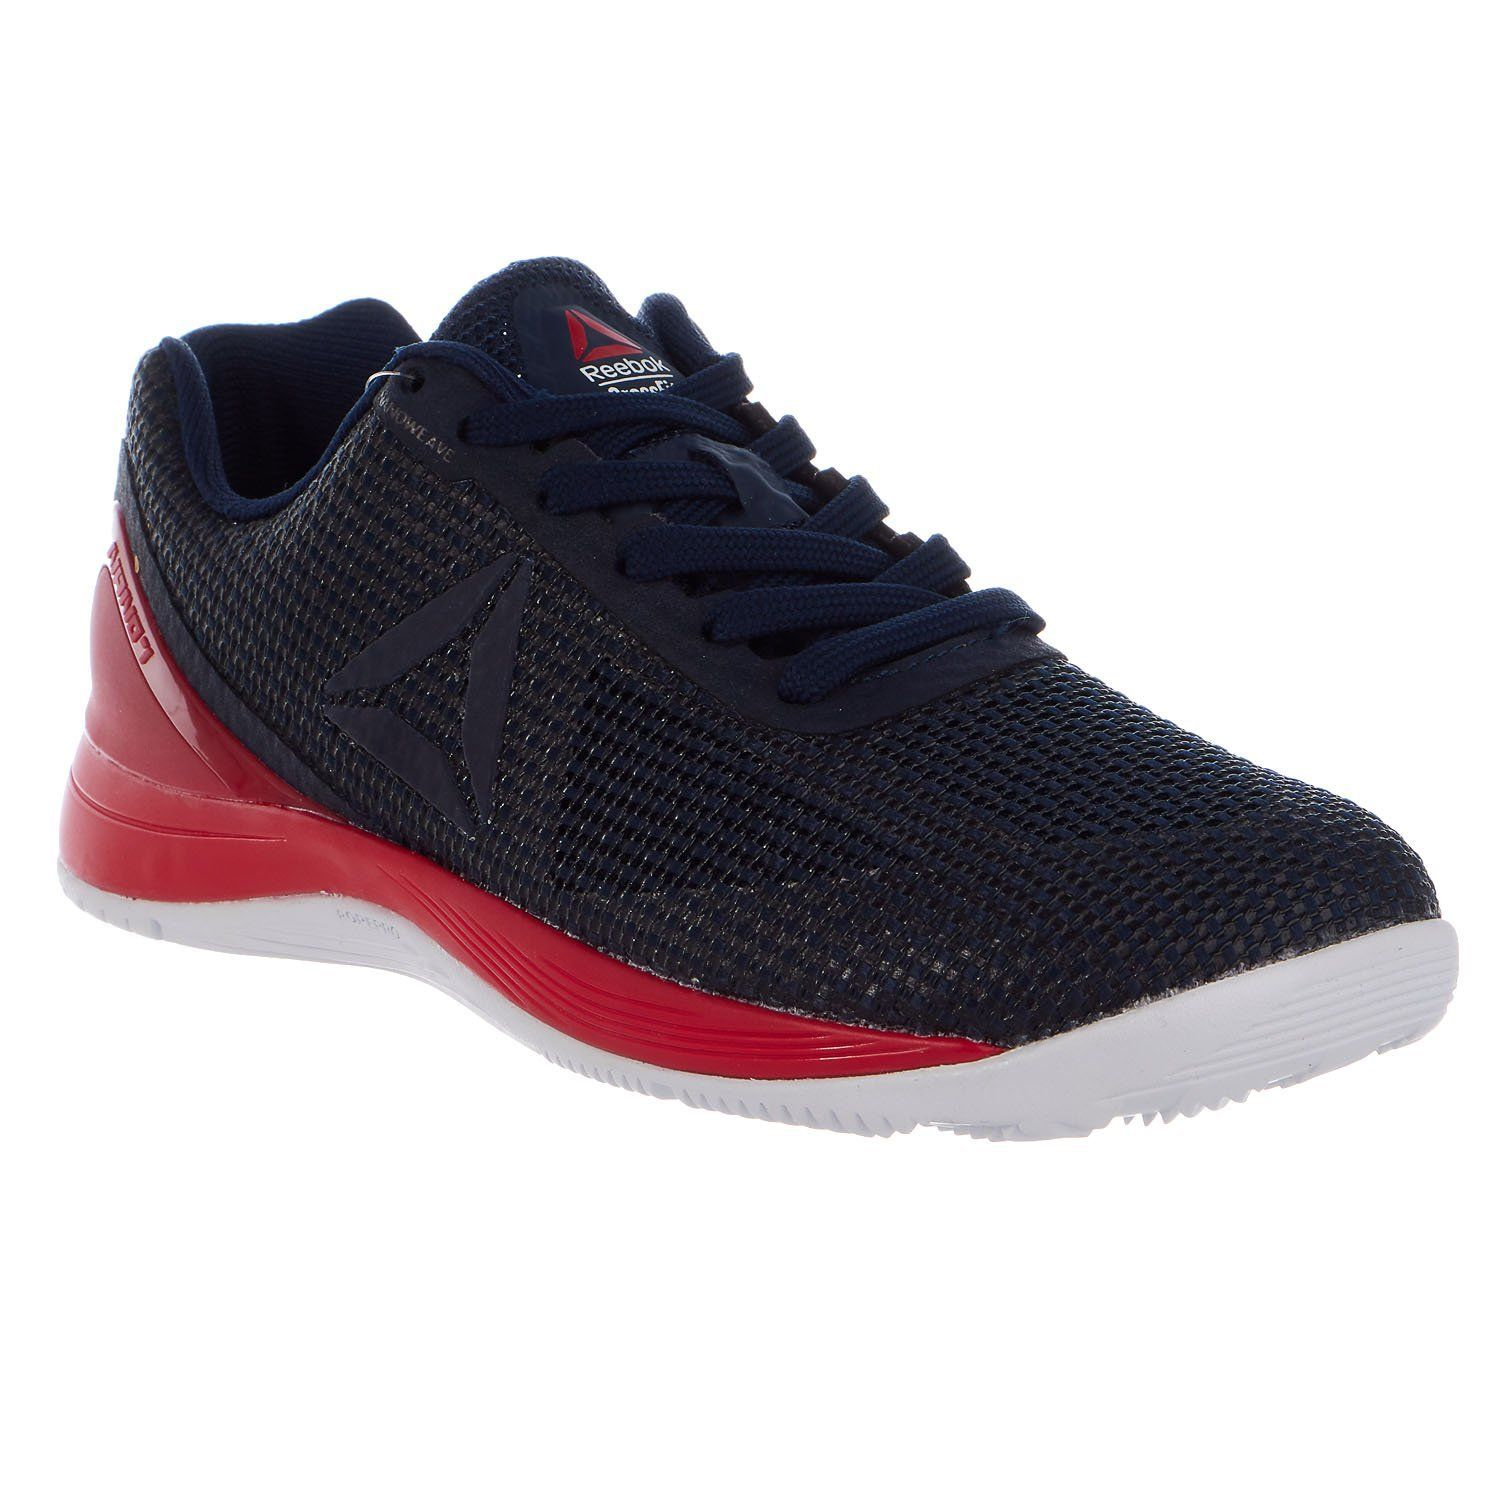 6247c679e62 Reebok Women s Crossfit Nano 7.0 Cross-Trainer Shoe